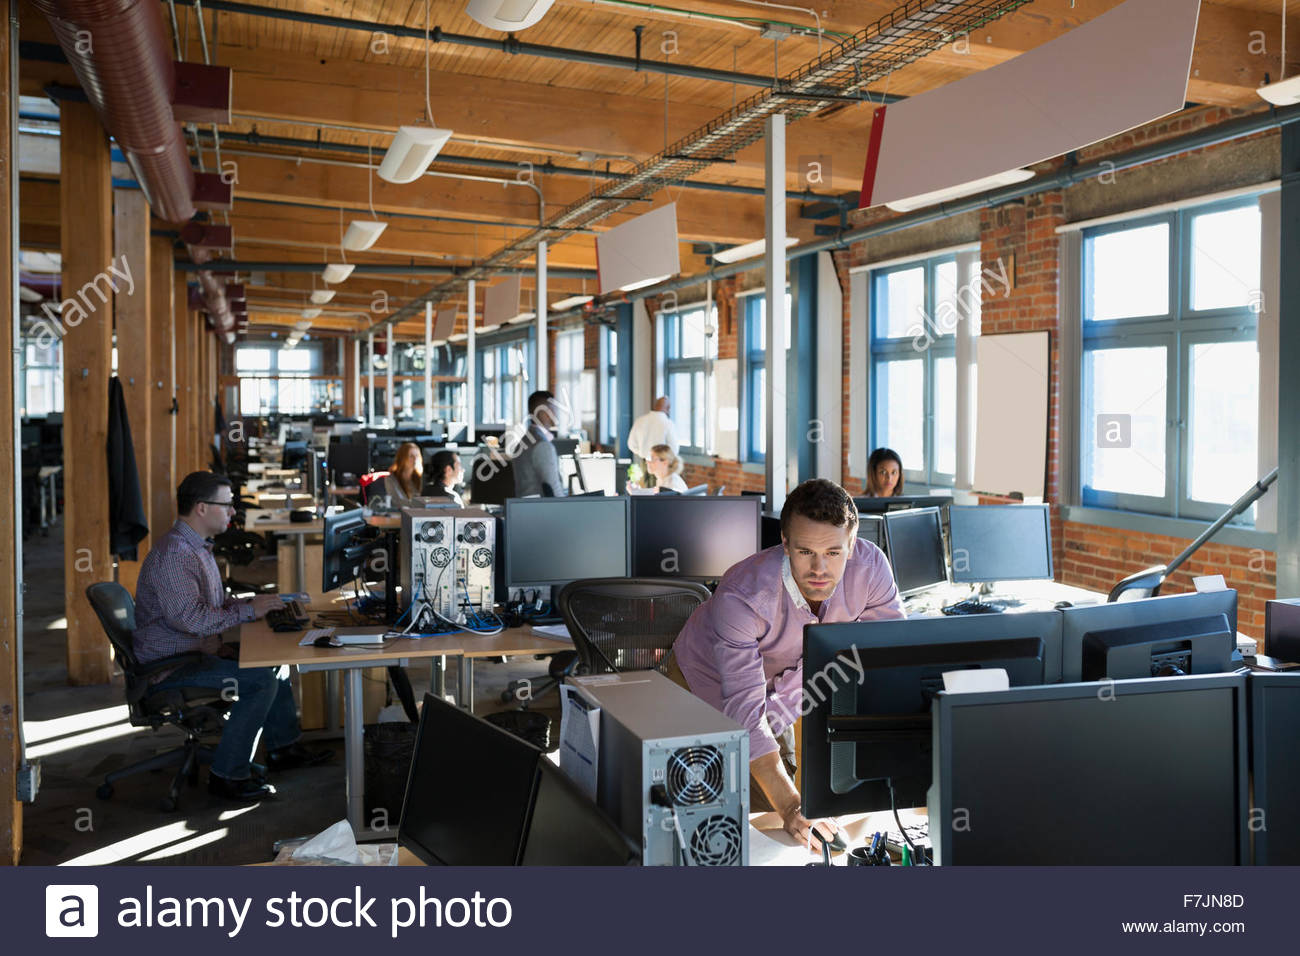 Business people working in open office - Stock Image